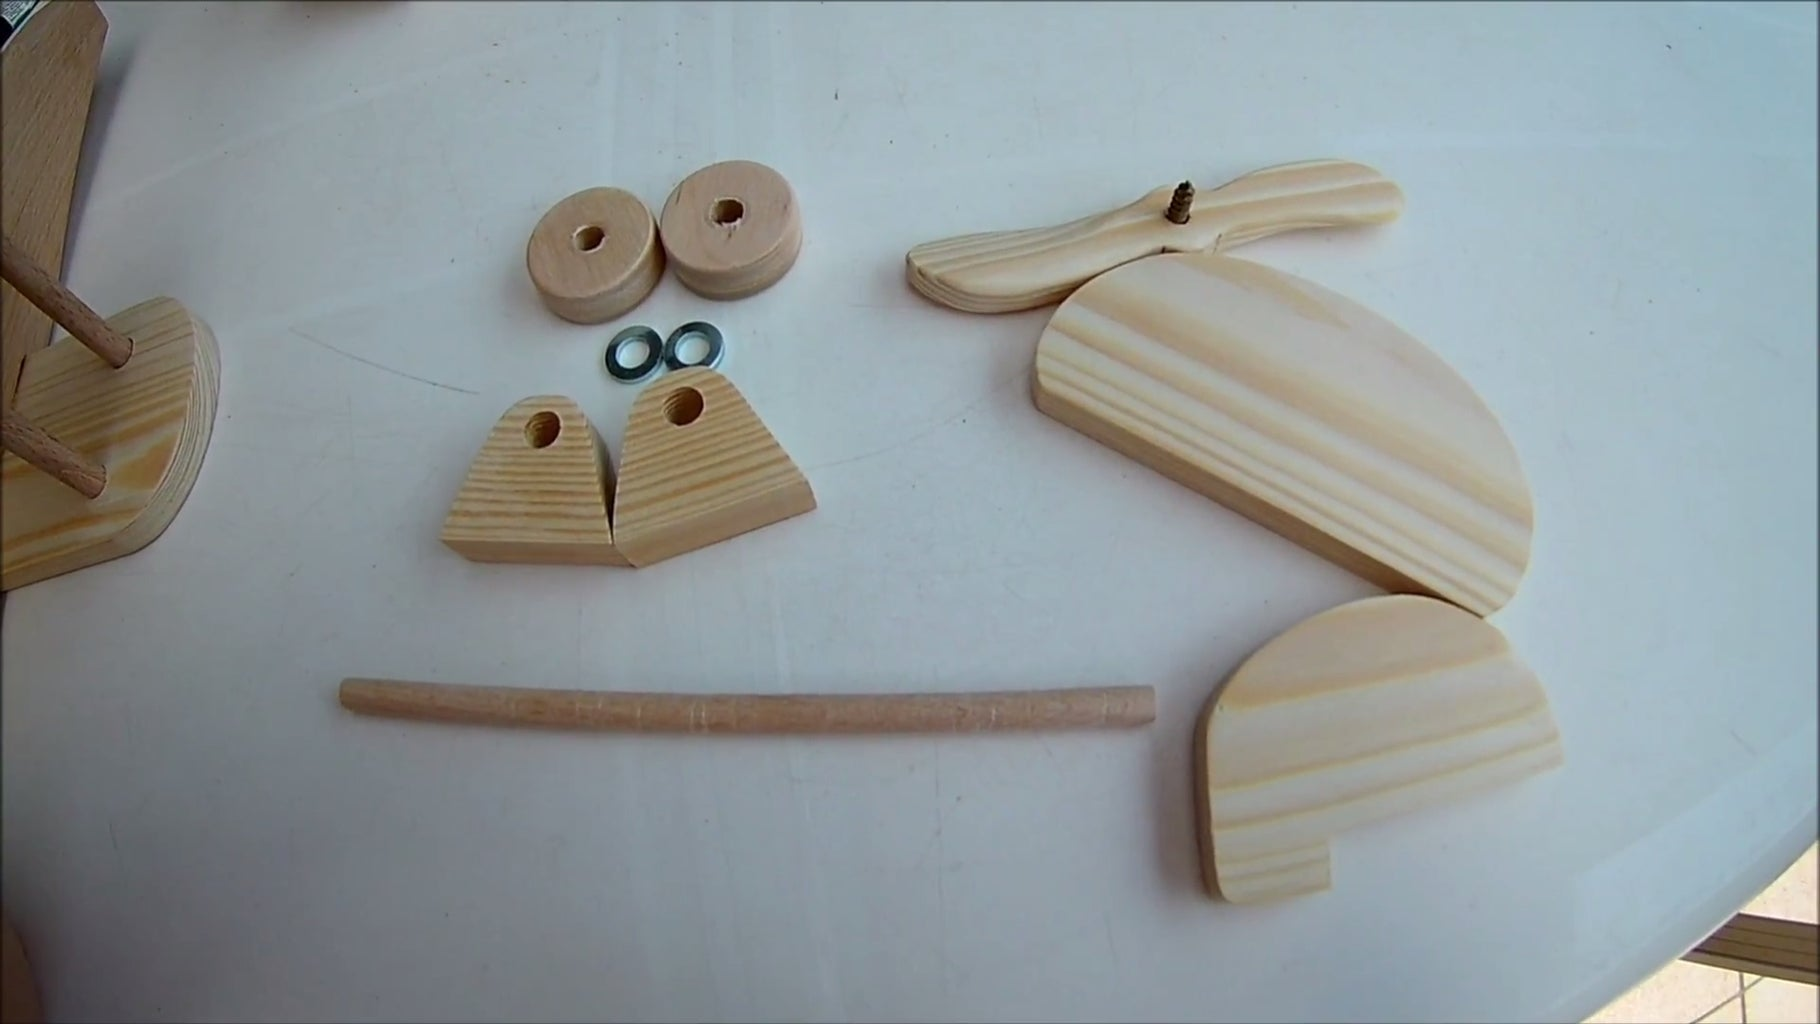 Step 3: the Smaller Parts of the Biplane